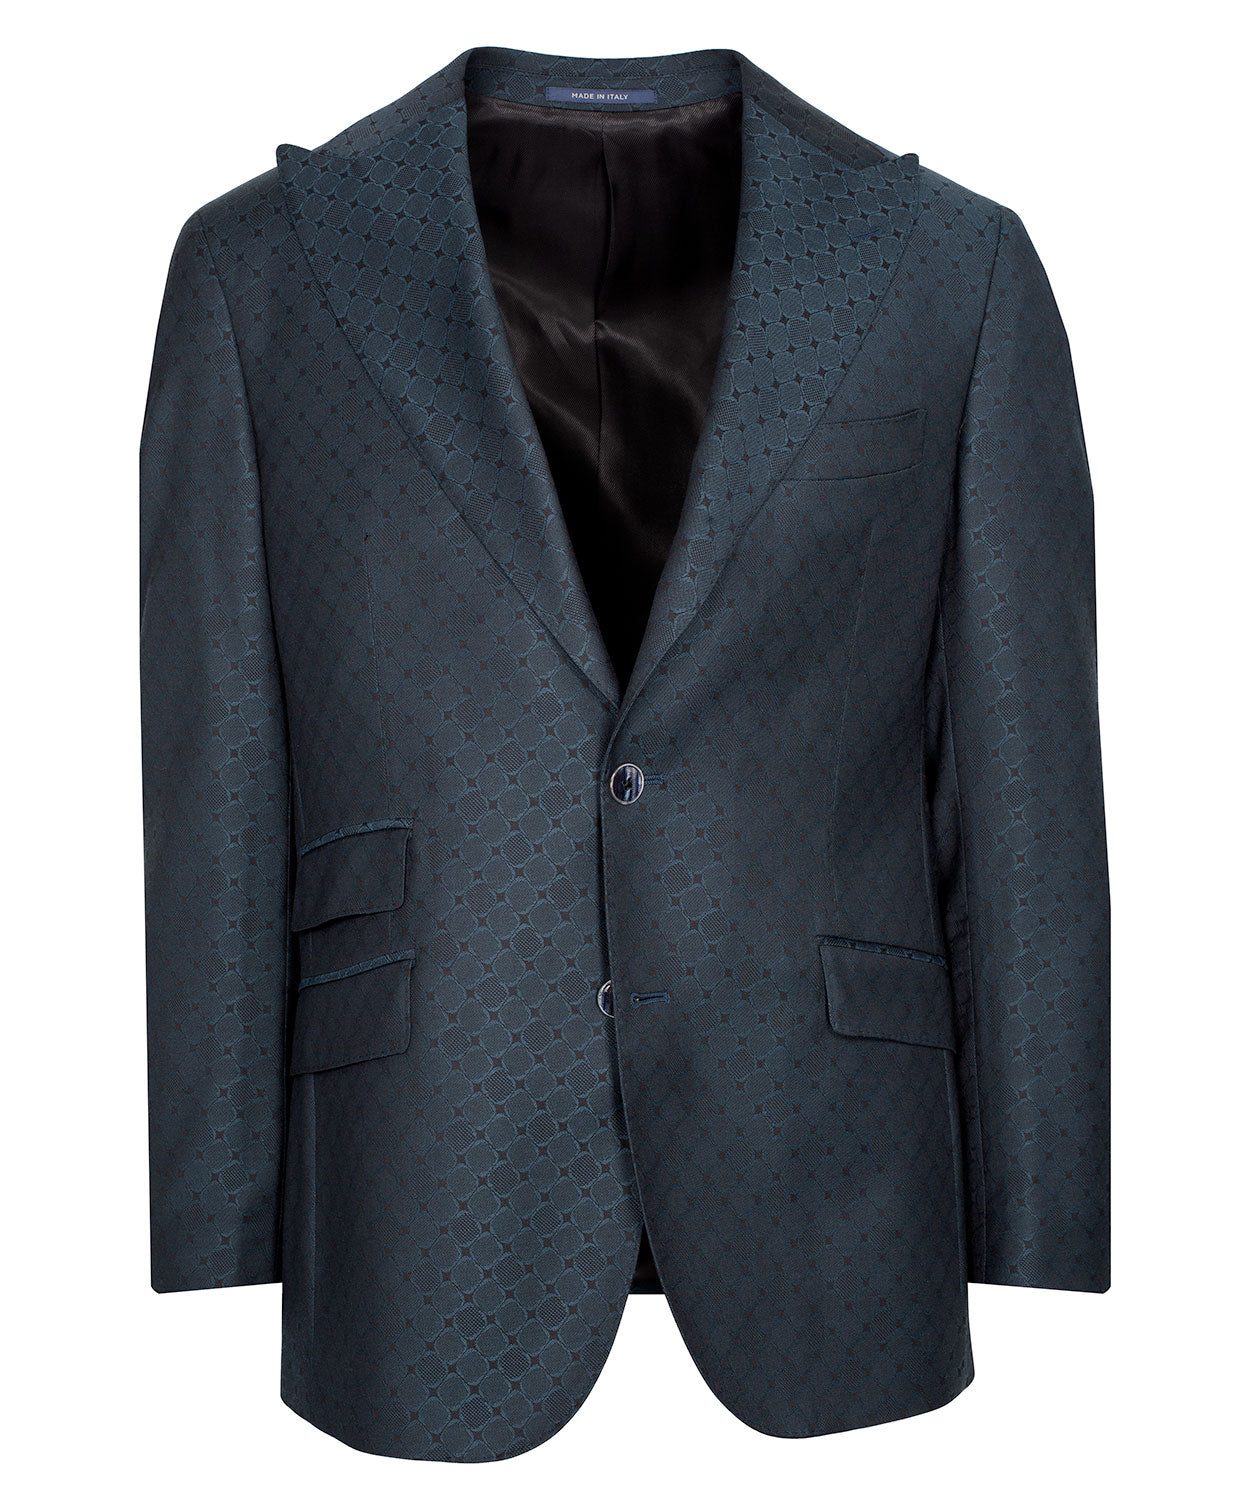 Ethan Bottle Green Tonal Woven Diamond Satine Jacket